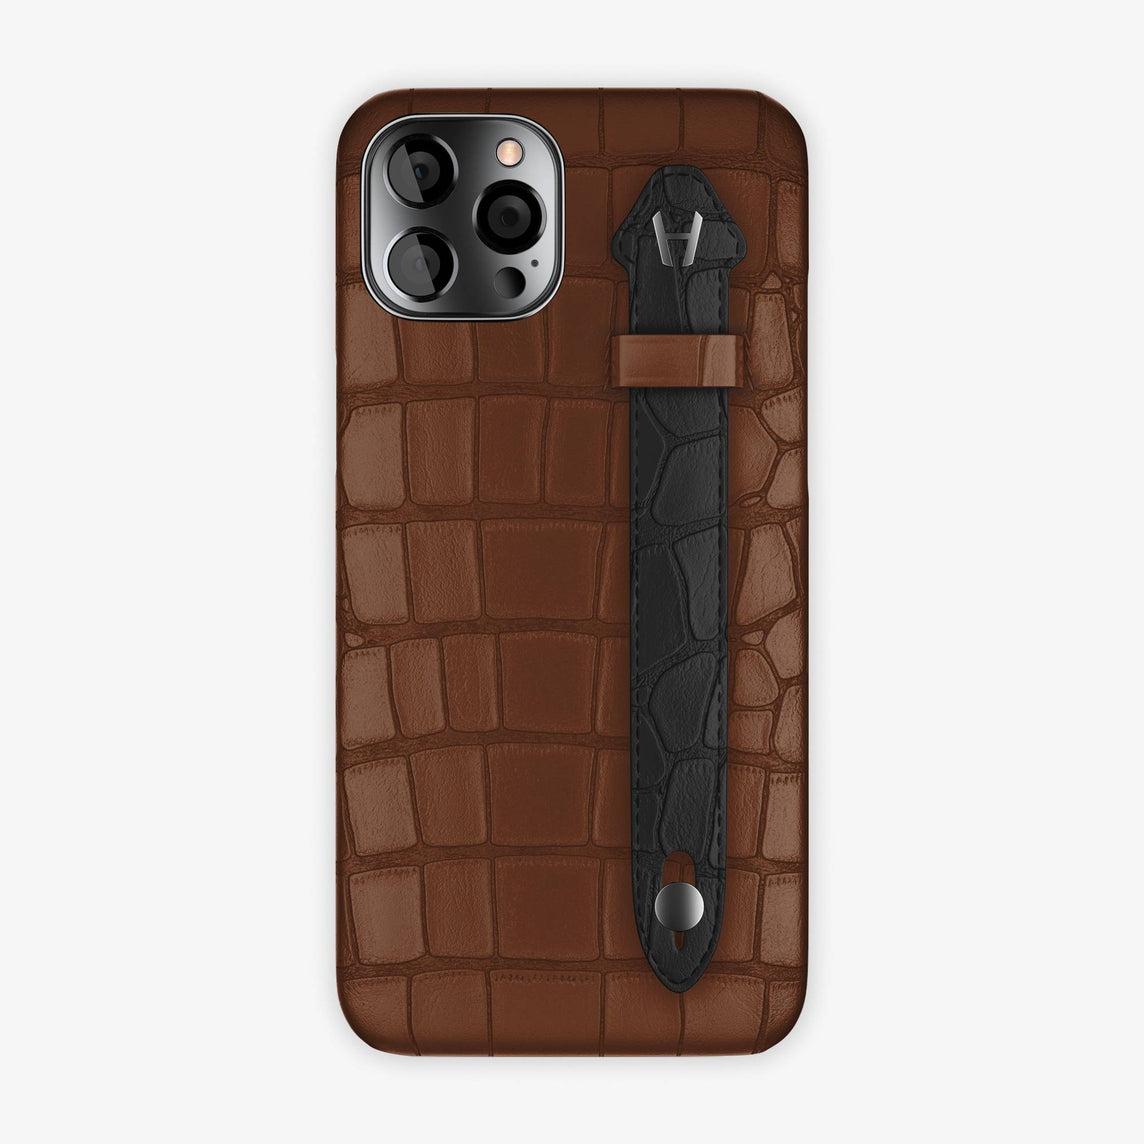 Alligator Side Finger Case iPhone 12 Pro Max | Brown/Black - Black